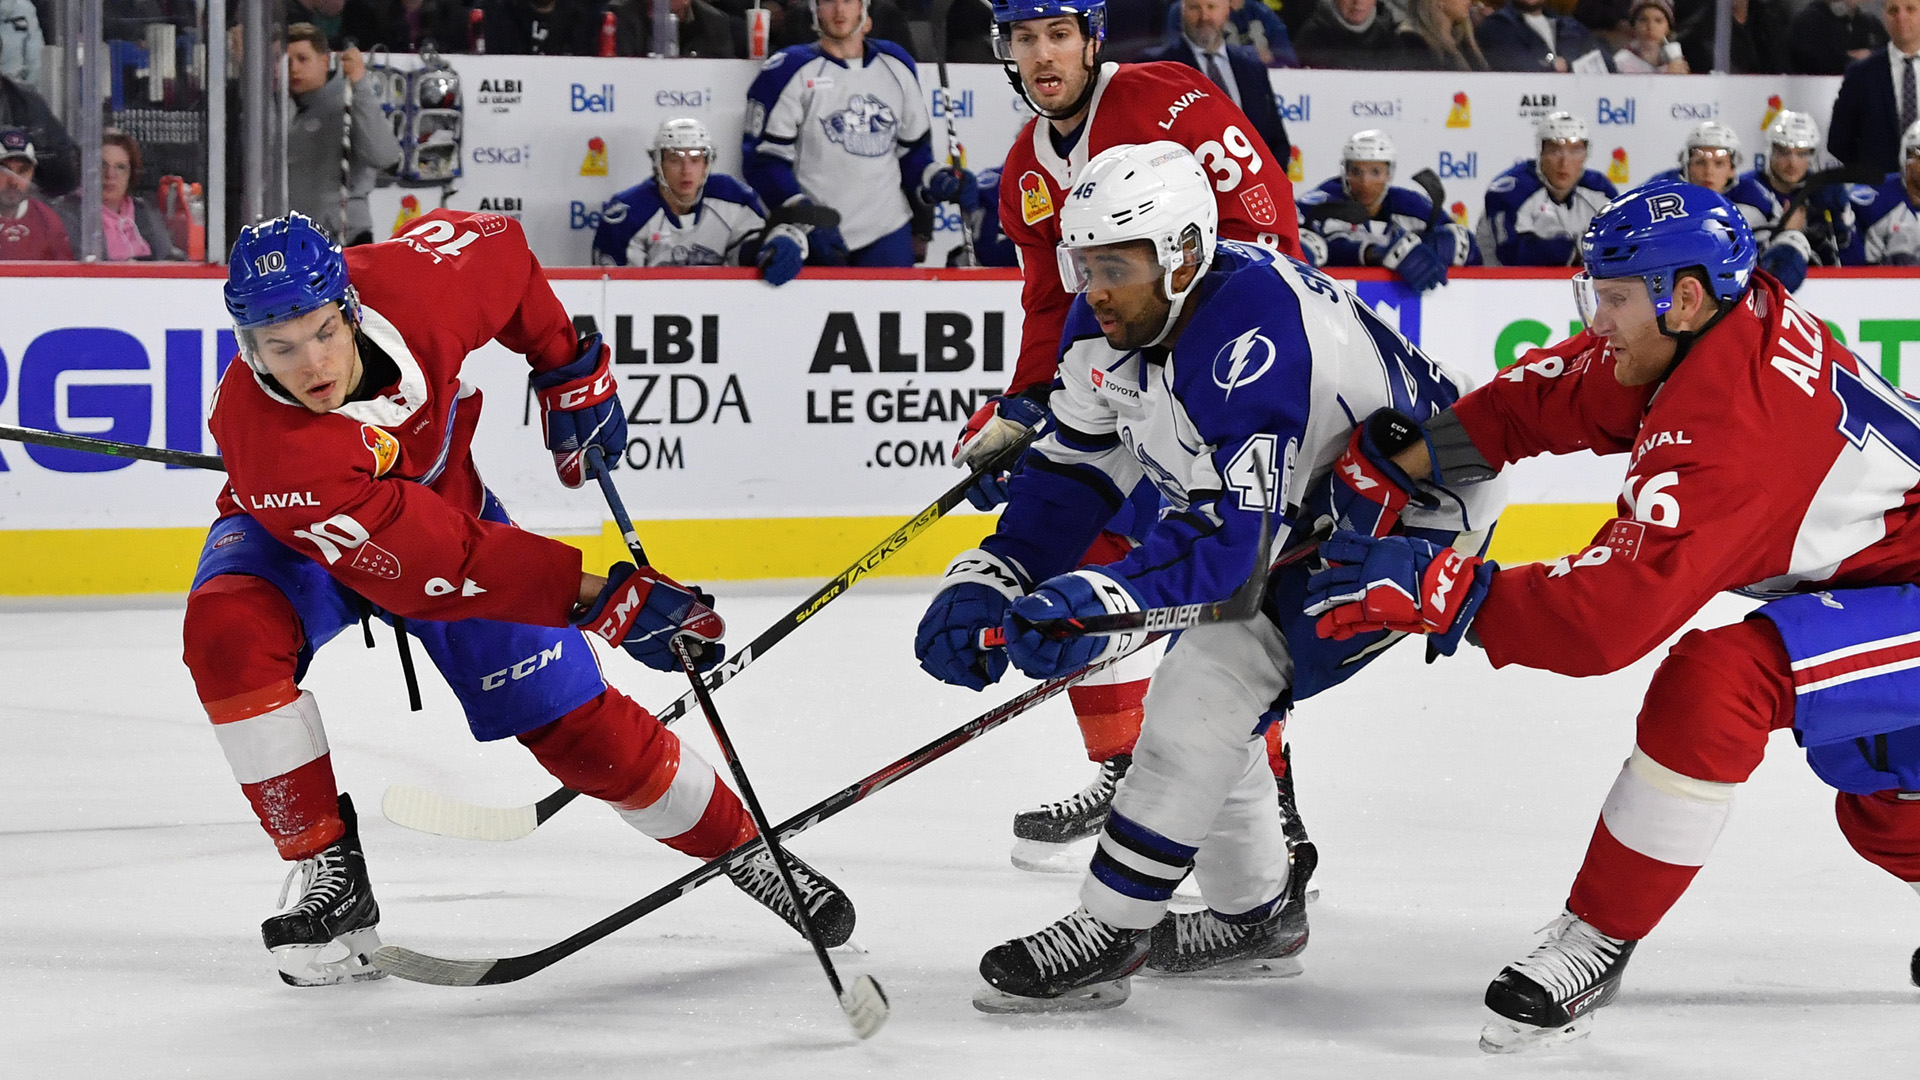 Crunch edged by Rocket in overtime, 3-2